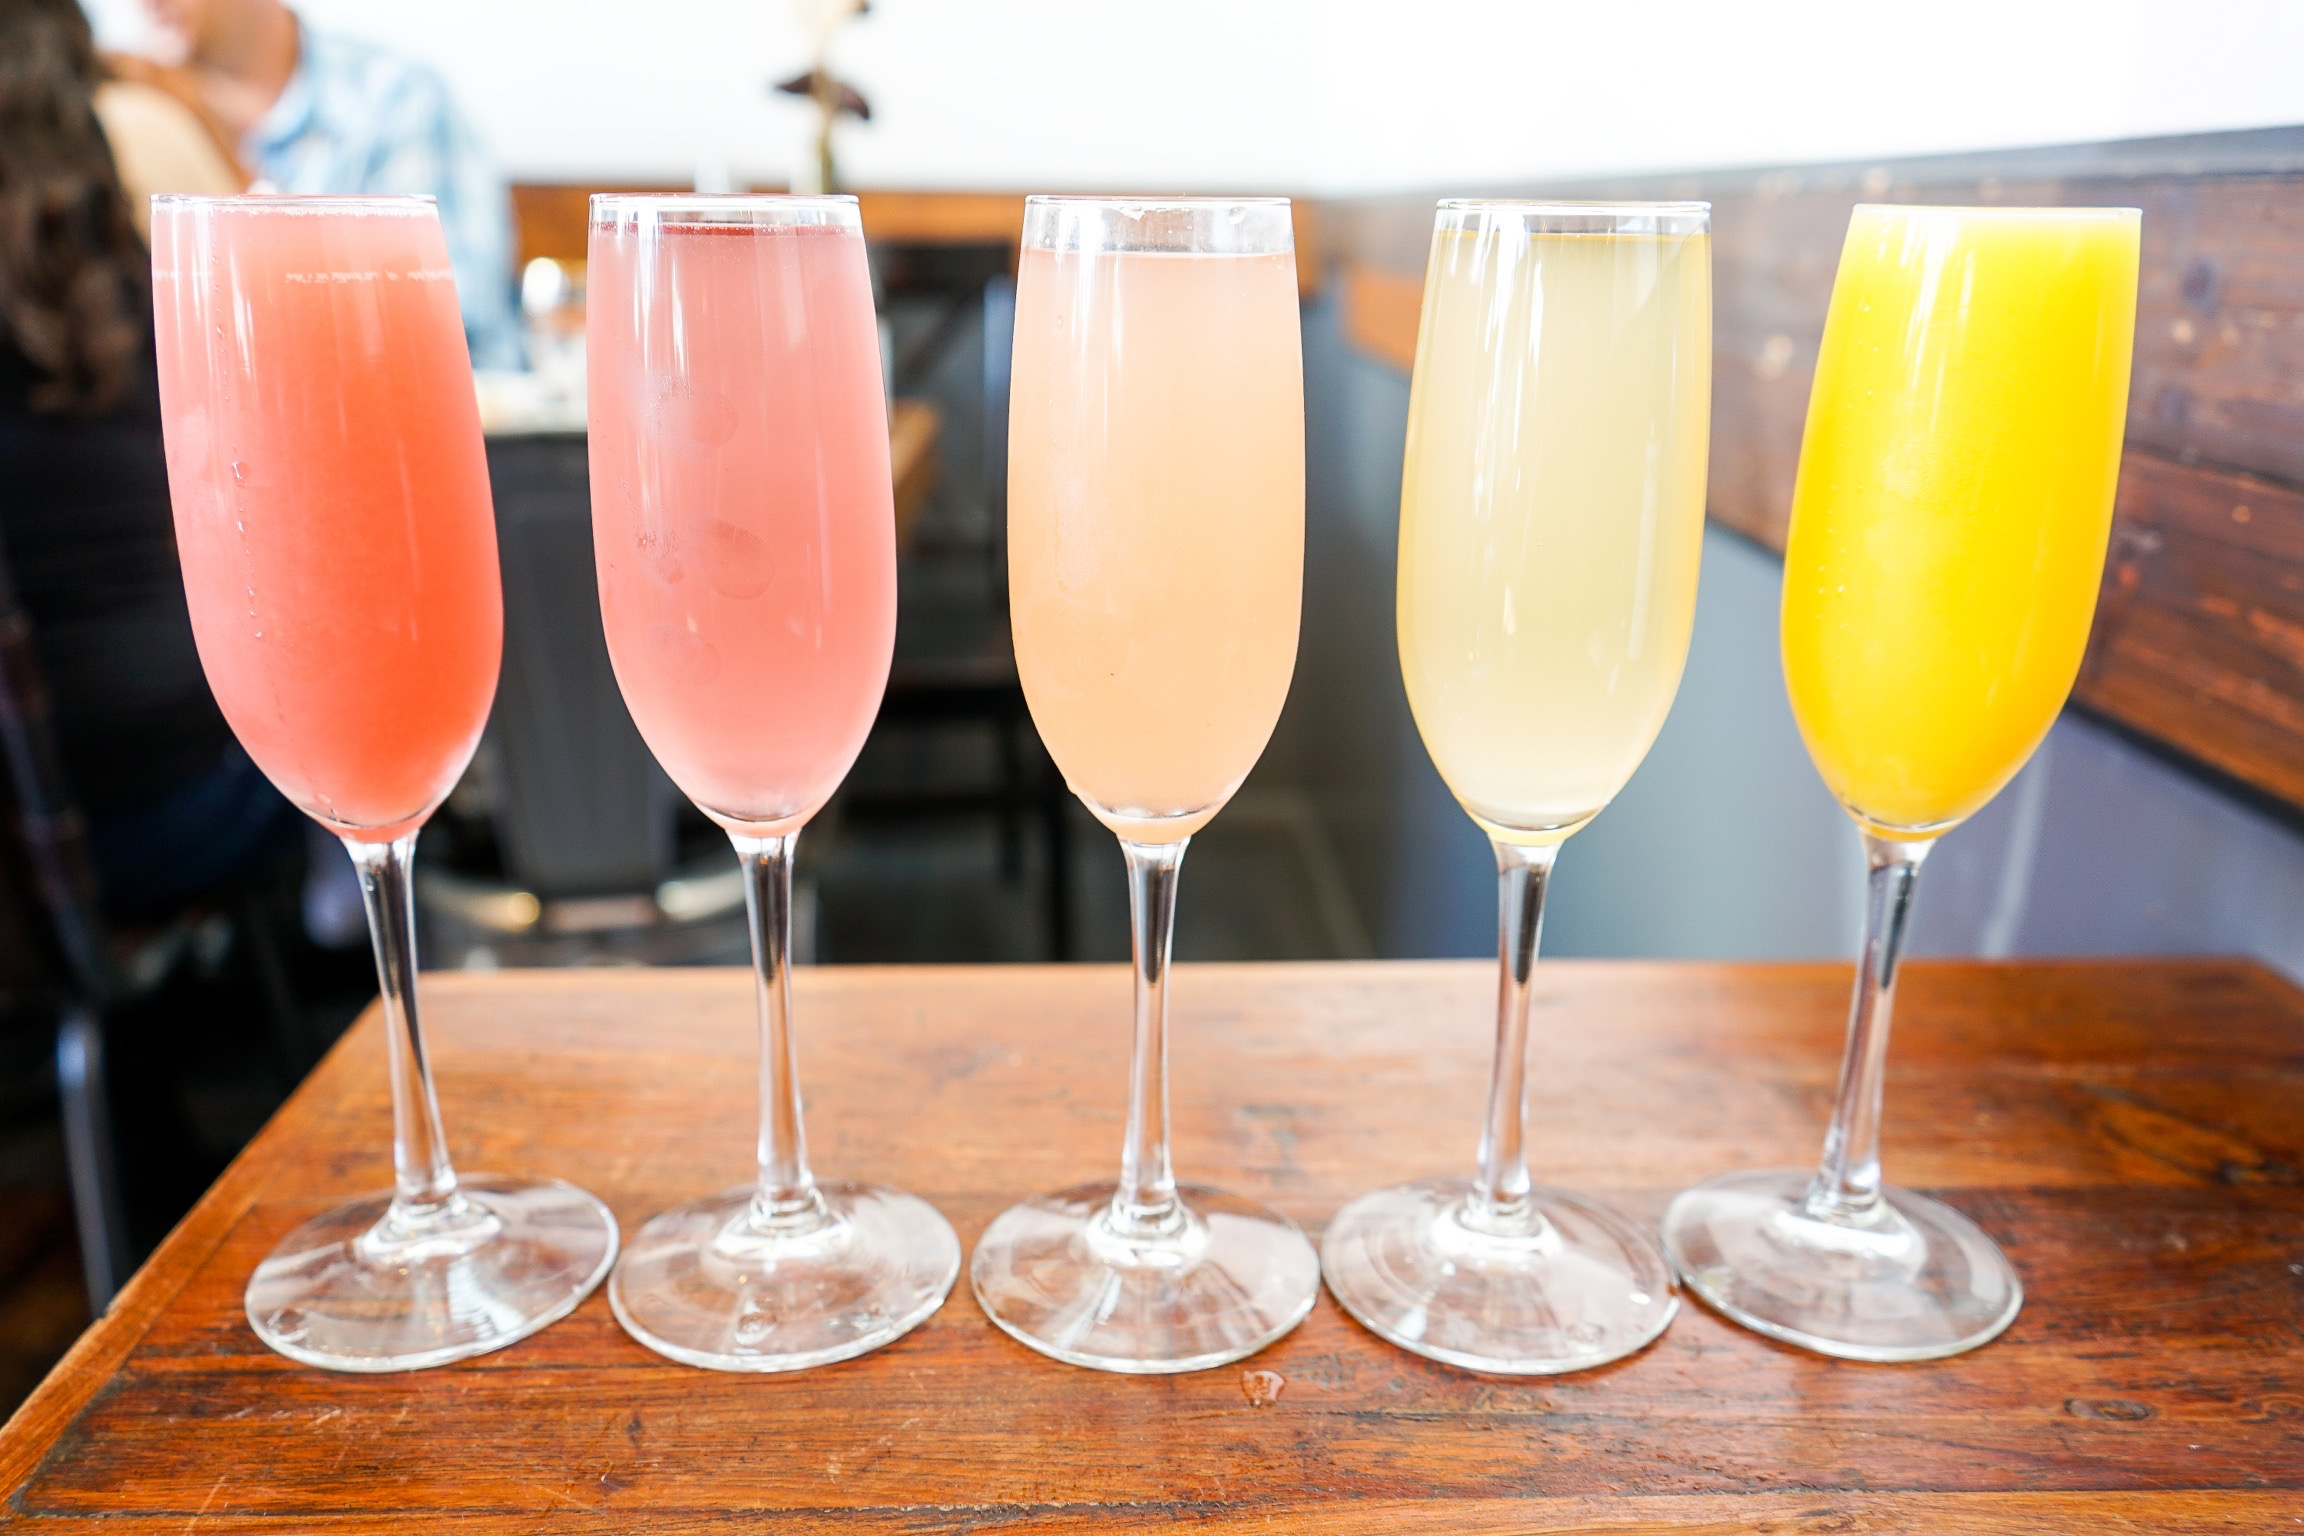 Rainbow of Mimosas at at The Rockefeller, Manhattan Beach, CA